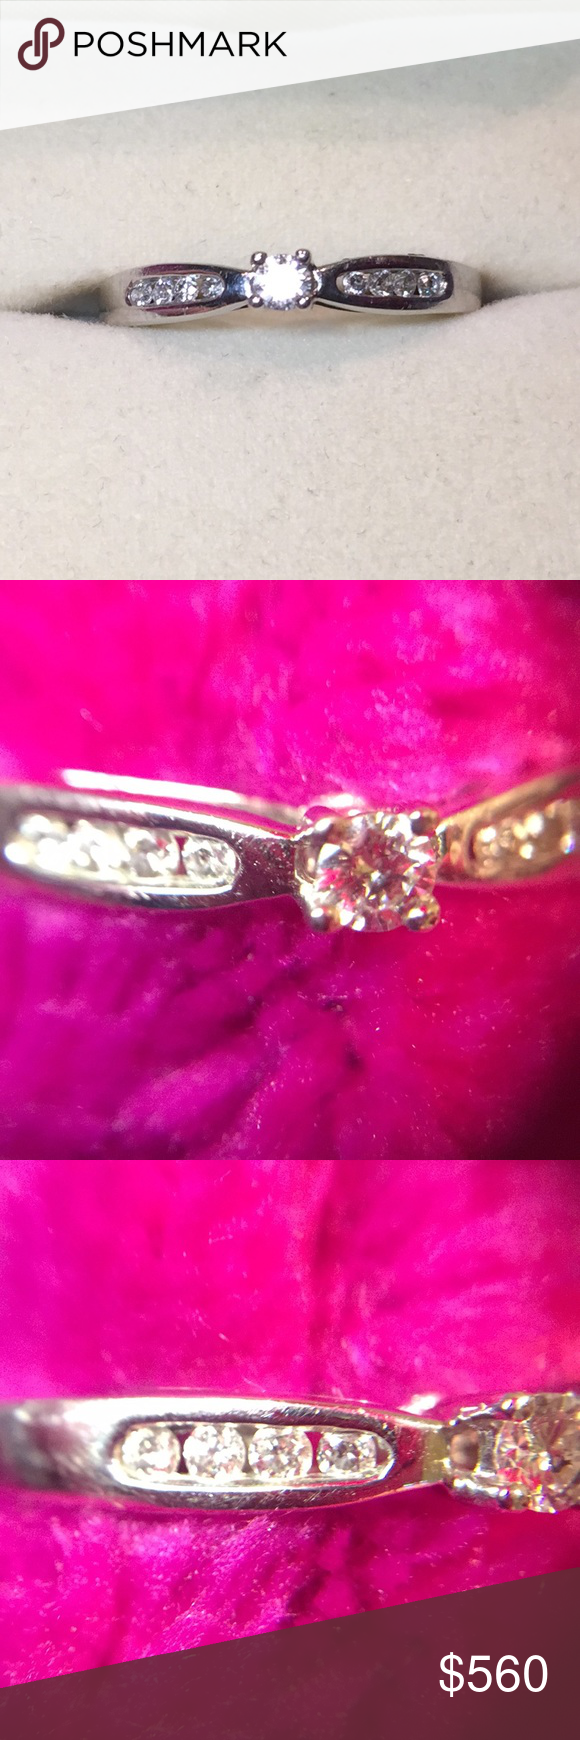 Clearest real diamonds .25 carat white gold ring | Zales jewelry ...